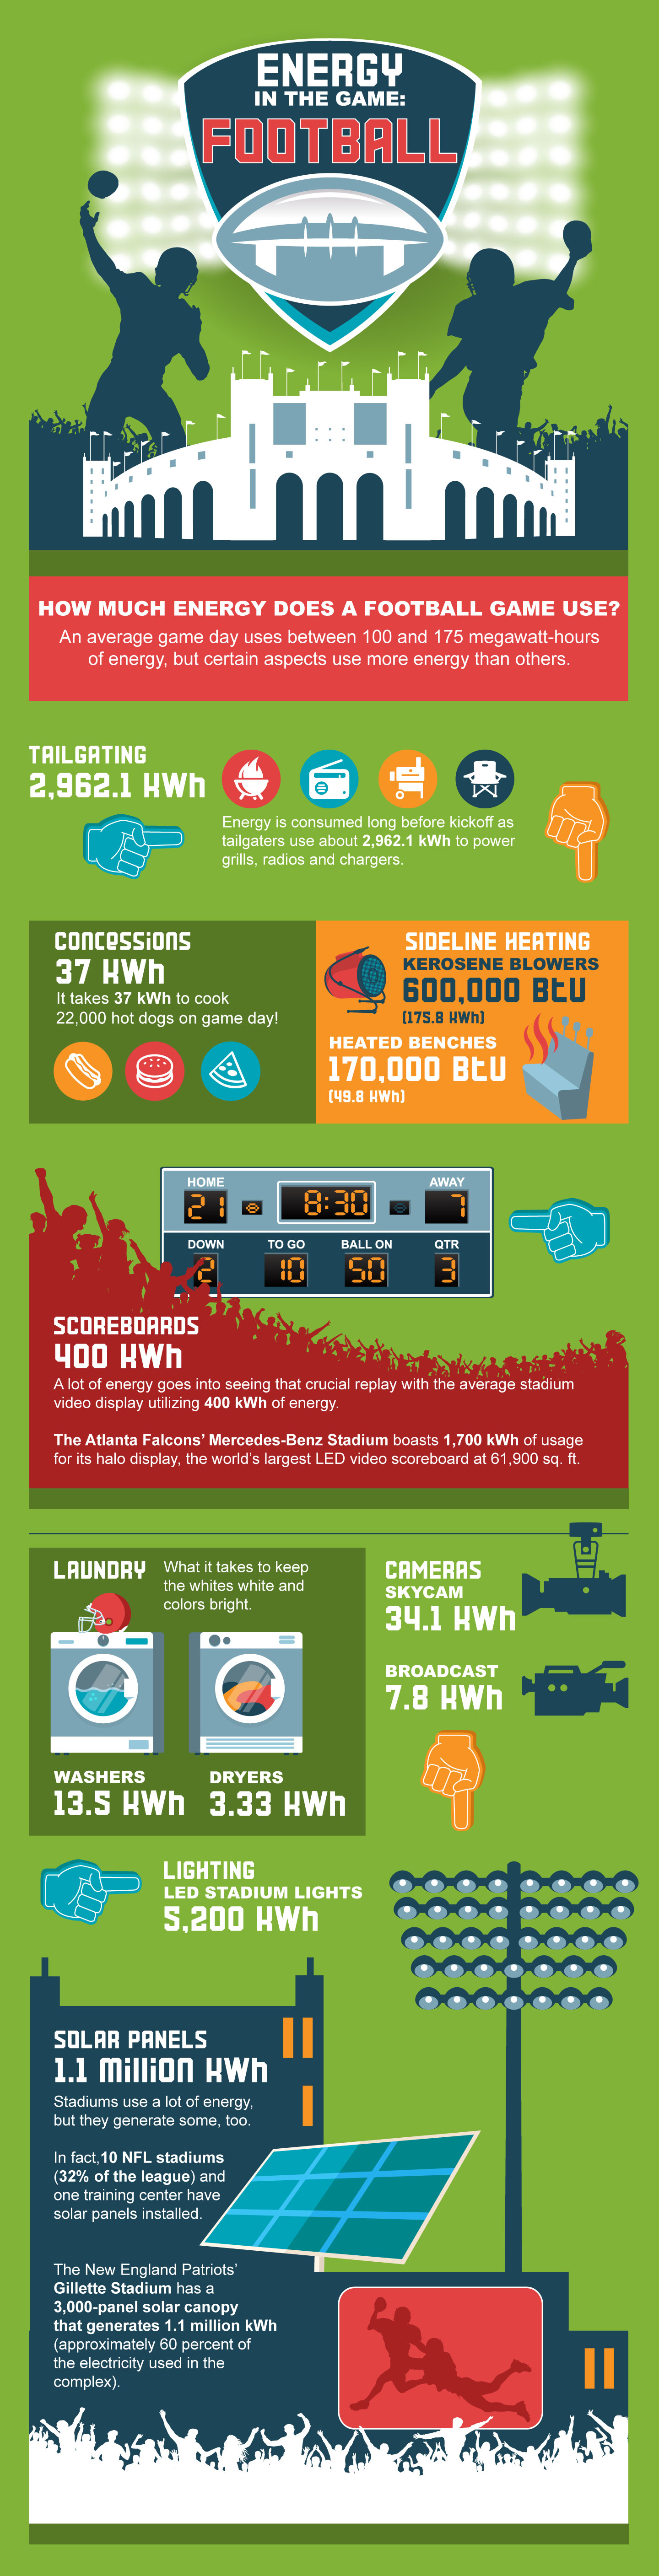 How Much Energy Does a Football Games Use